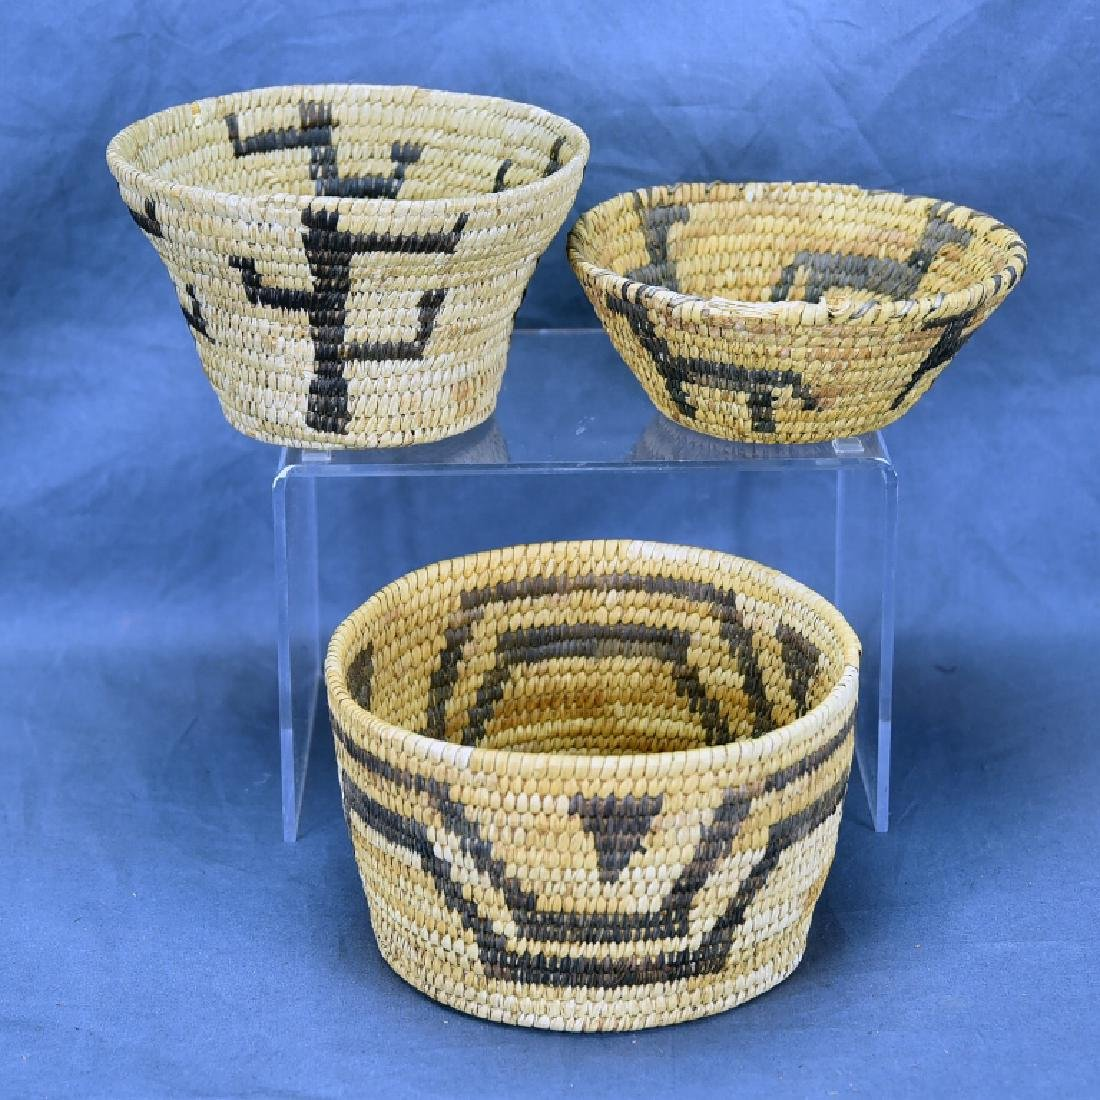 Lot of 3 Native American Coil Baskets